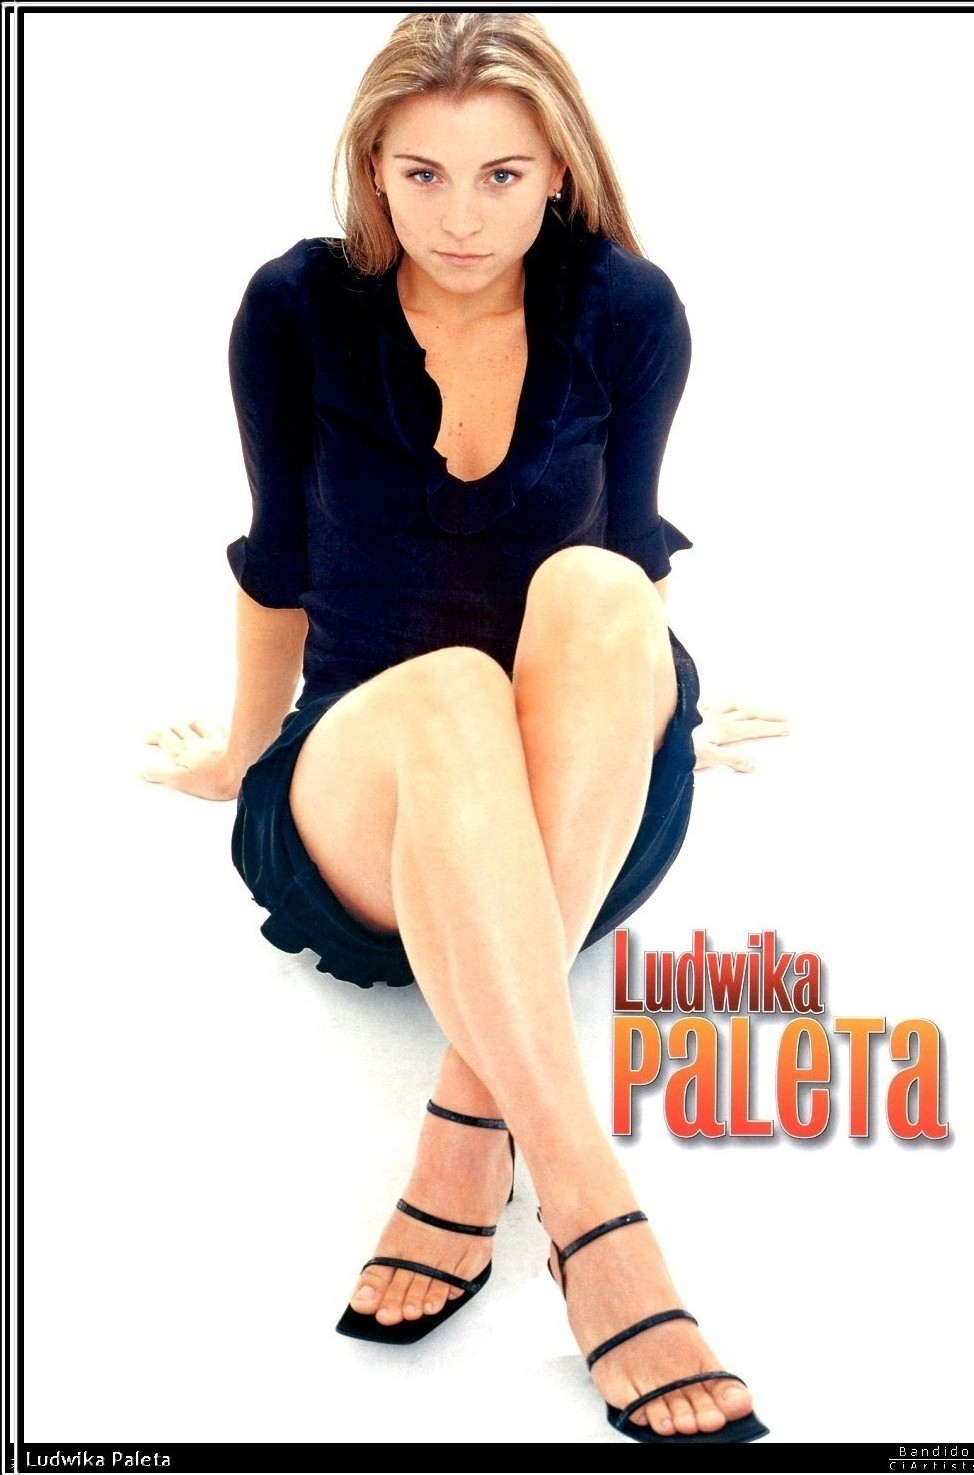 Ludwika Paletas Leaked Cell Phone Pictures